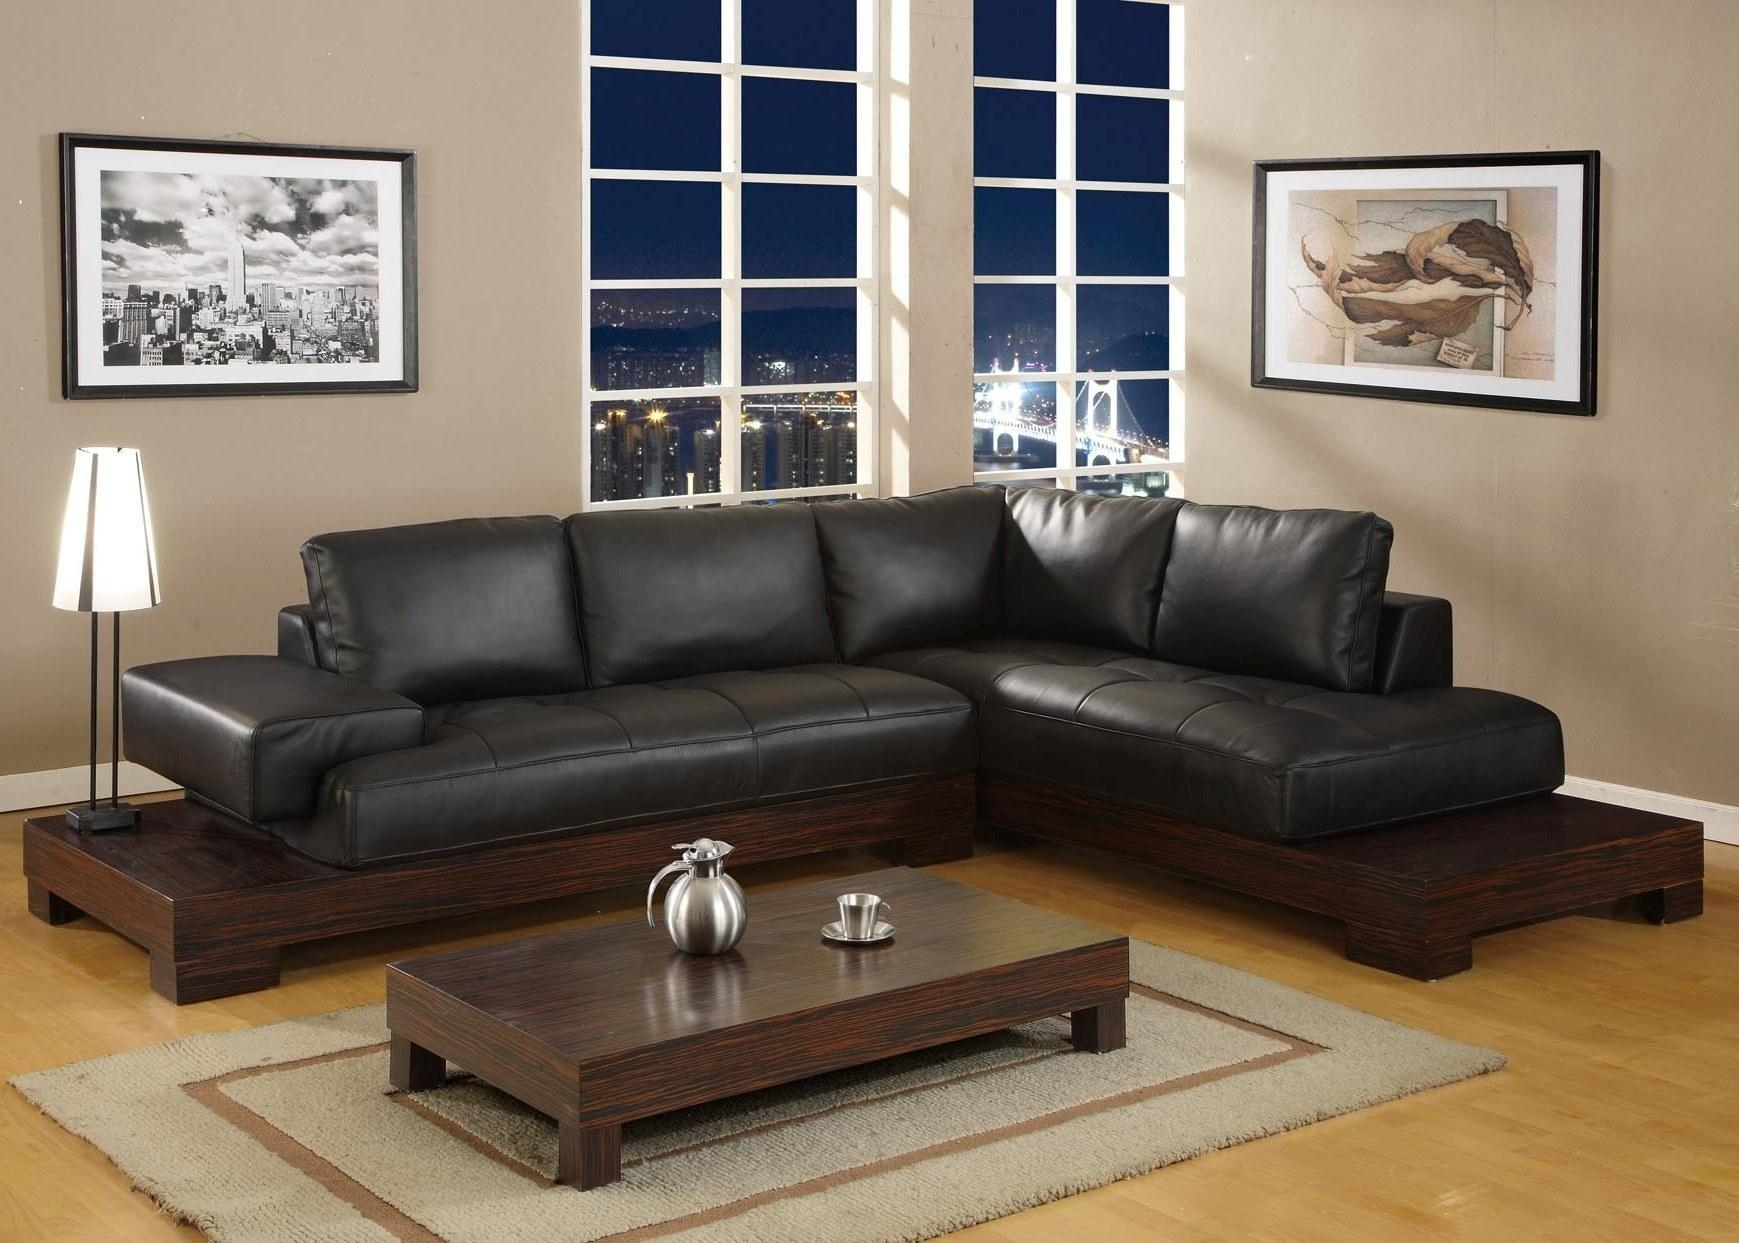 20 Ideas of Black Sofas Decors